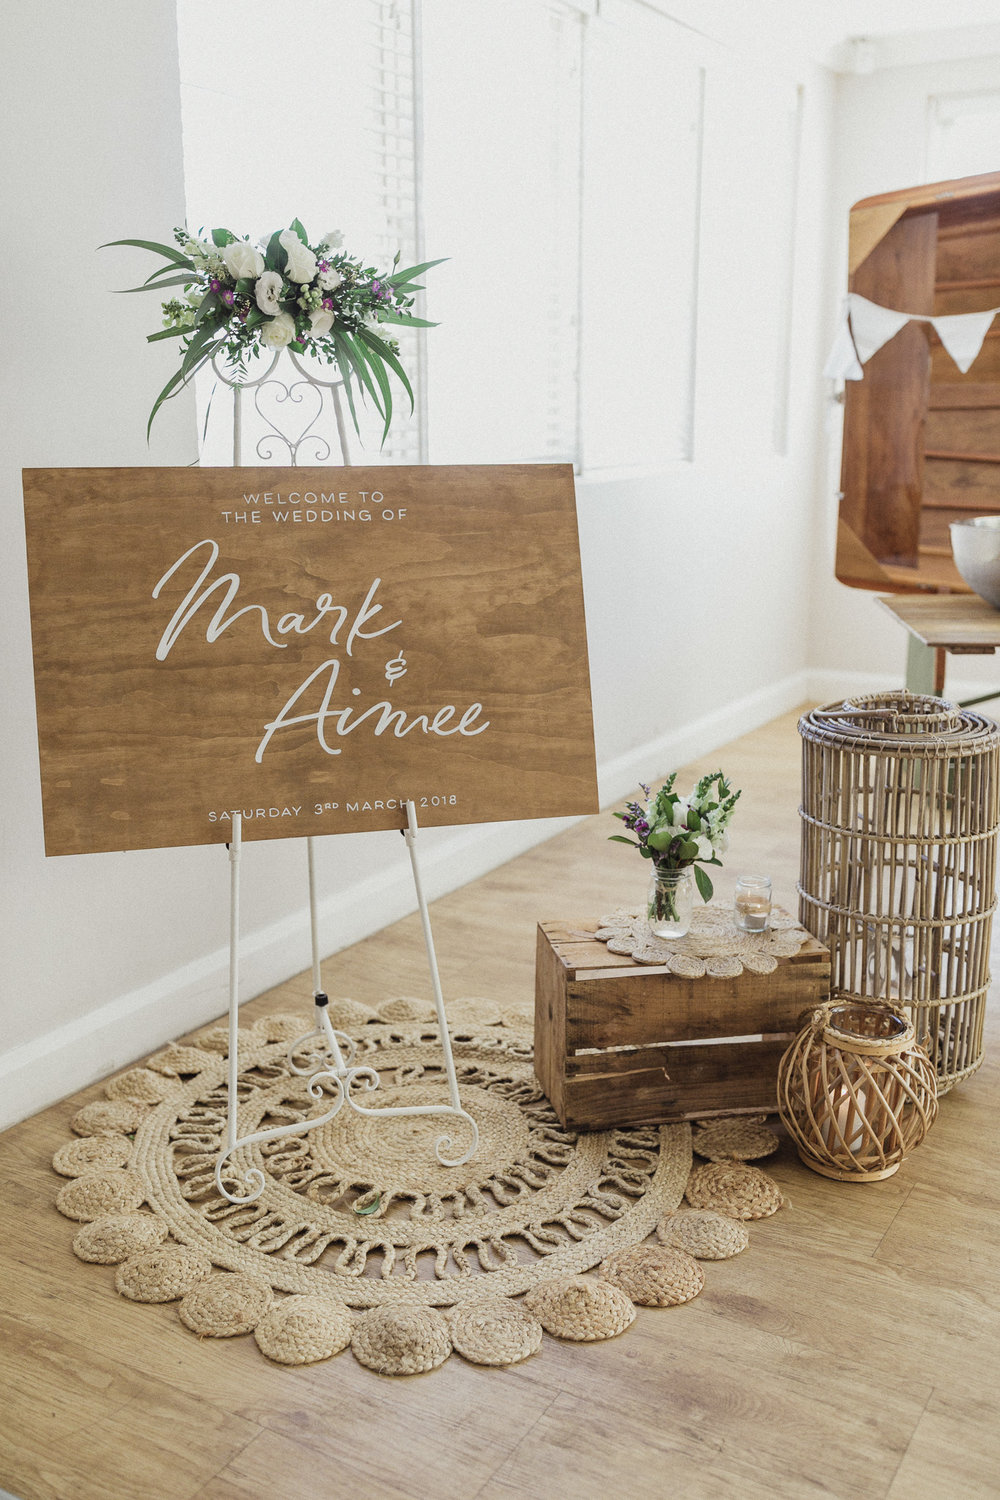 Entrance_Manly_Wedding_Welcome_Sign_Styled_Boho_Rustic.jpg